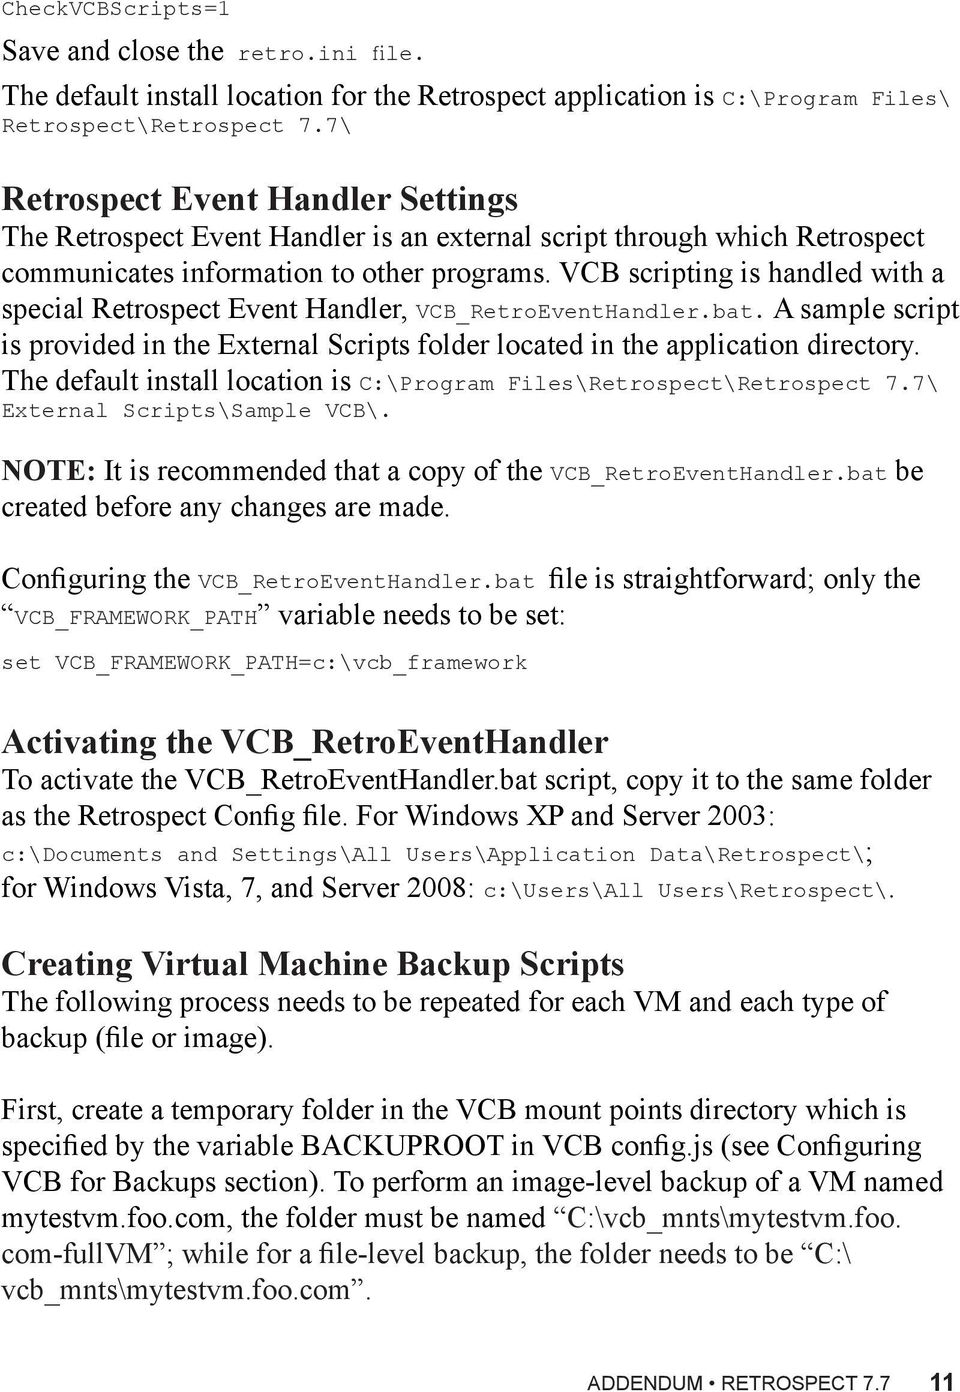 VCB scripting is handled with a special Retrospect Event Handler, VCB_RetroEventHandler.bat. A sample script is provided in the External Scripts folder located in the application directory.